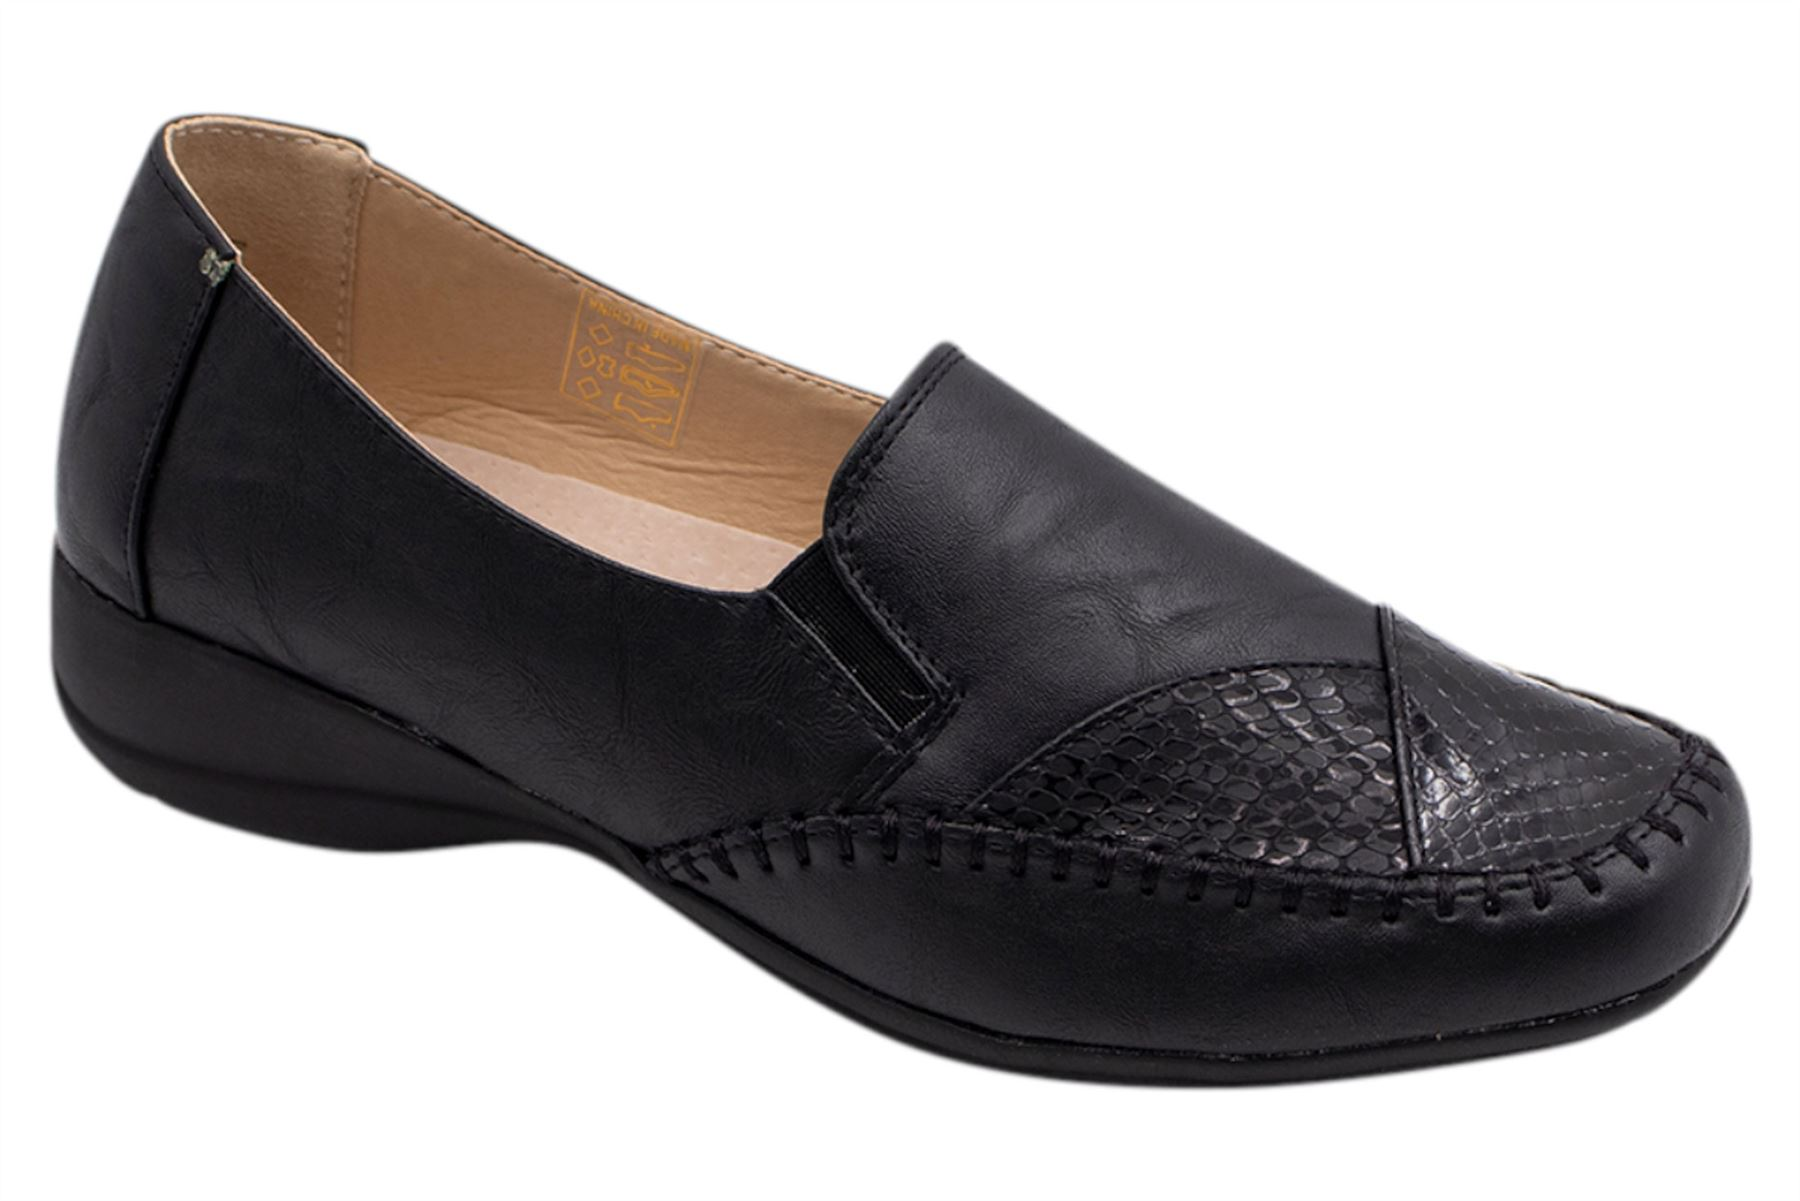 Womens-Flat-Shoes-Ladies-Pumps-Office-Work-Casual-Slip-On-Loafer-Size thumbnail 11